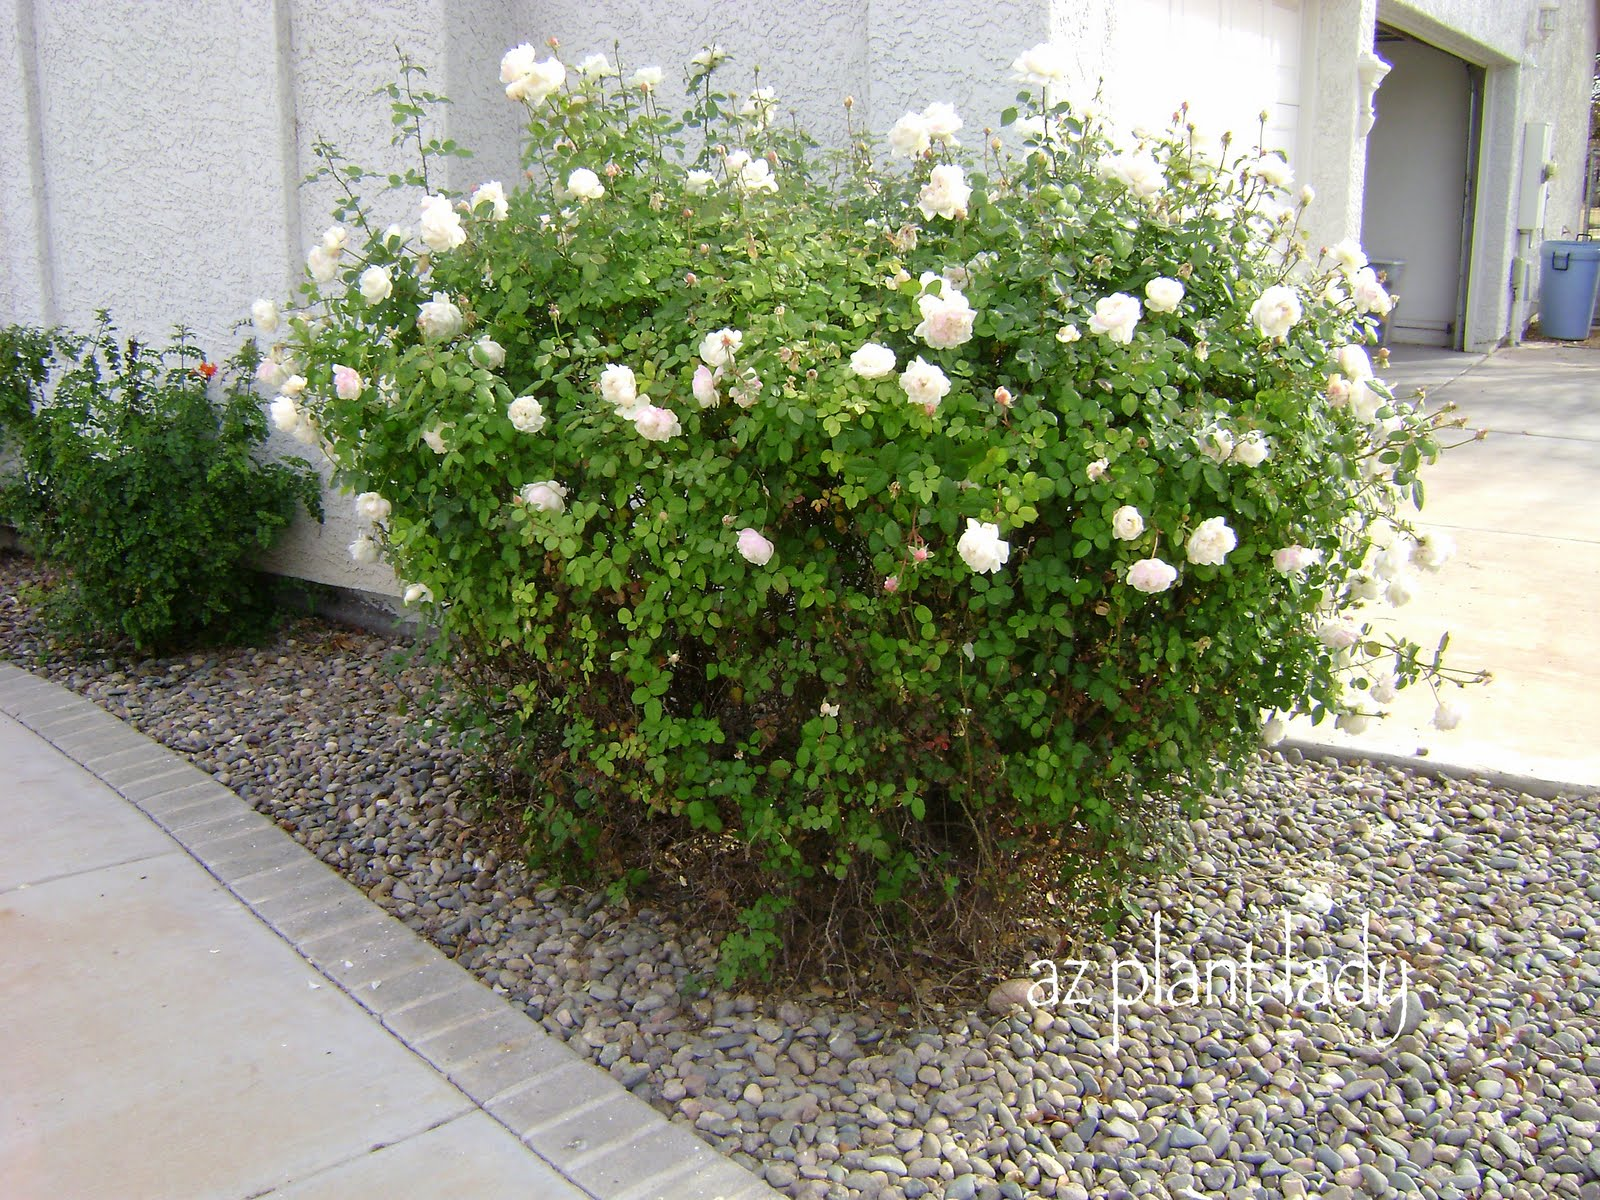 How to prune a rose bush - Unlike Many Rose Bushes This Particular One Continued To Bloom Without Any Help No Fertilizer Sprays Or Pruning But There Was A Lot Of Dead Growth And